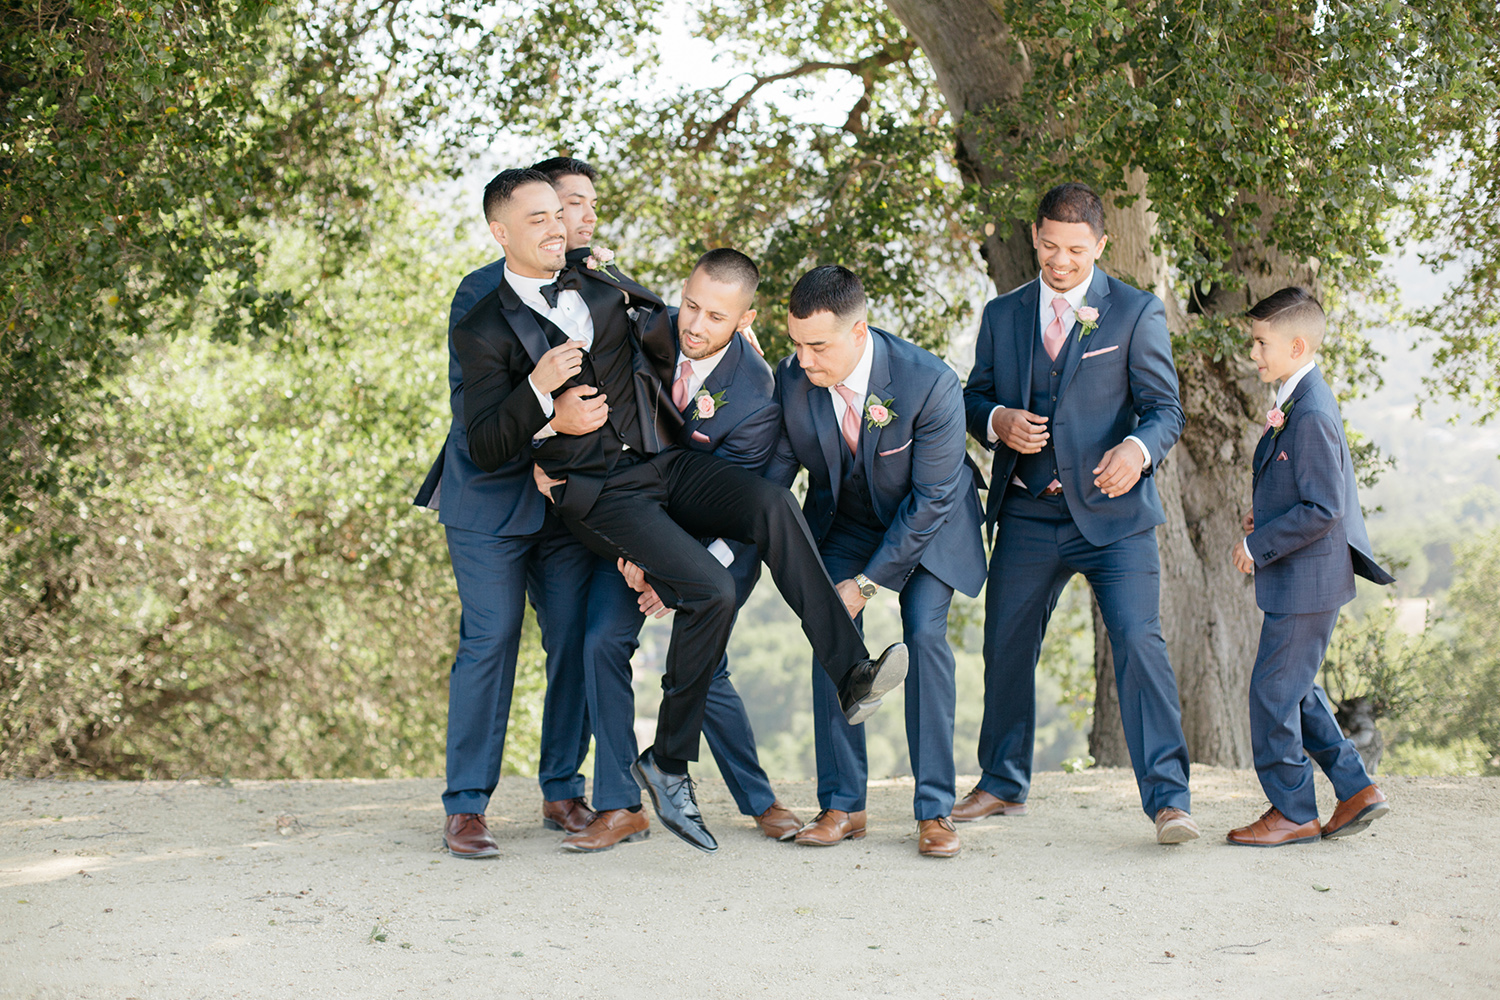 Groomsmen lifting up the groom for a fun pose.